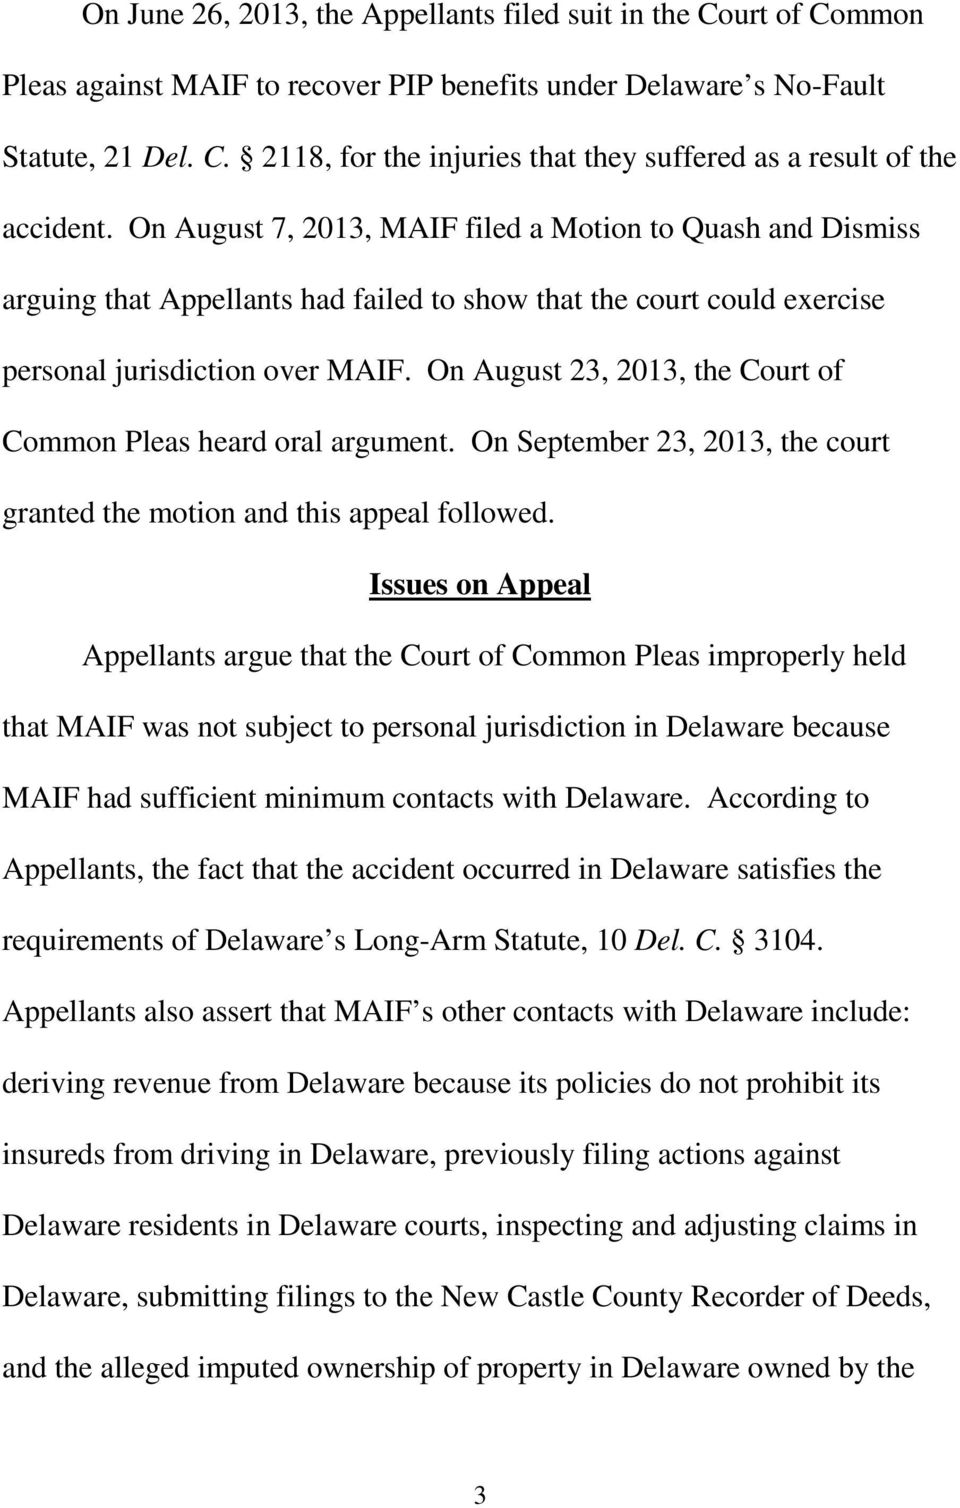 On August 23, 2013, the Court of Common Pleas heard oral argument. On September 23, 2013, the court granted the motion and this appeal followed.